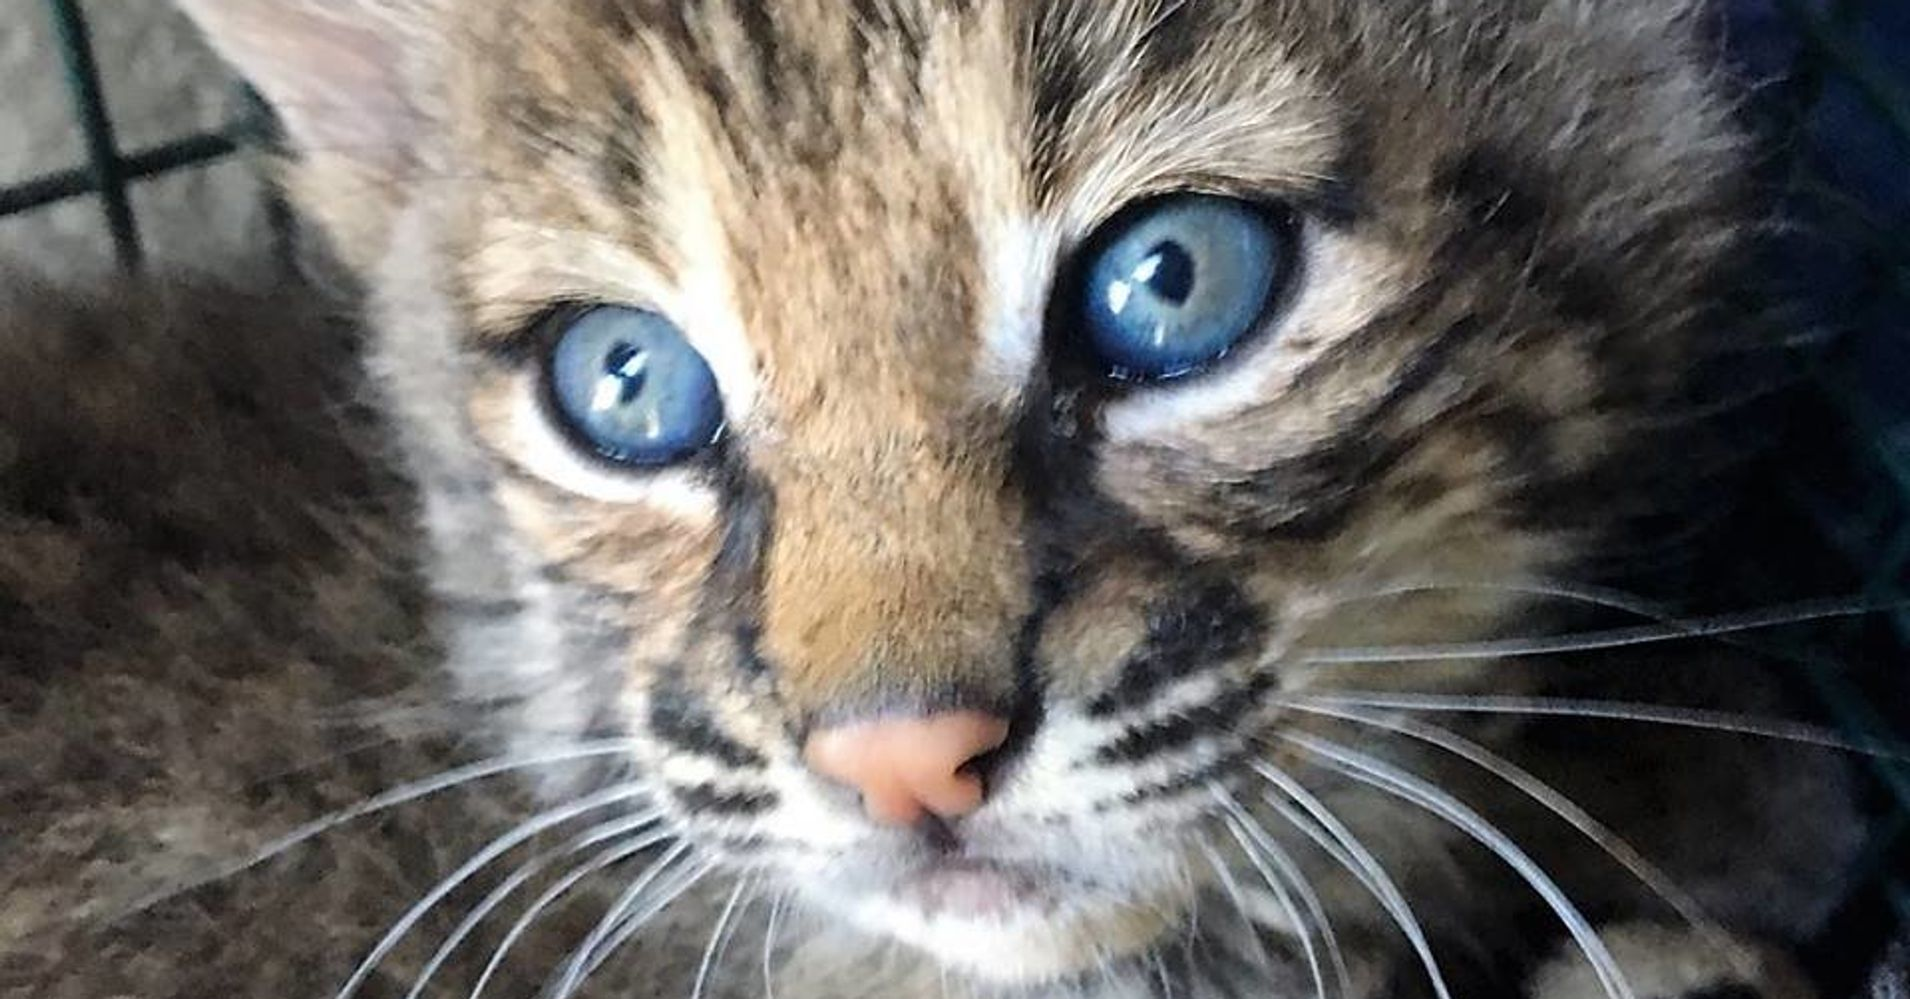 Bobcats Die After 'Rescue' By Woman Who Says She Thought They Were Domestic Kittens